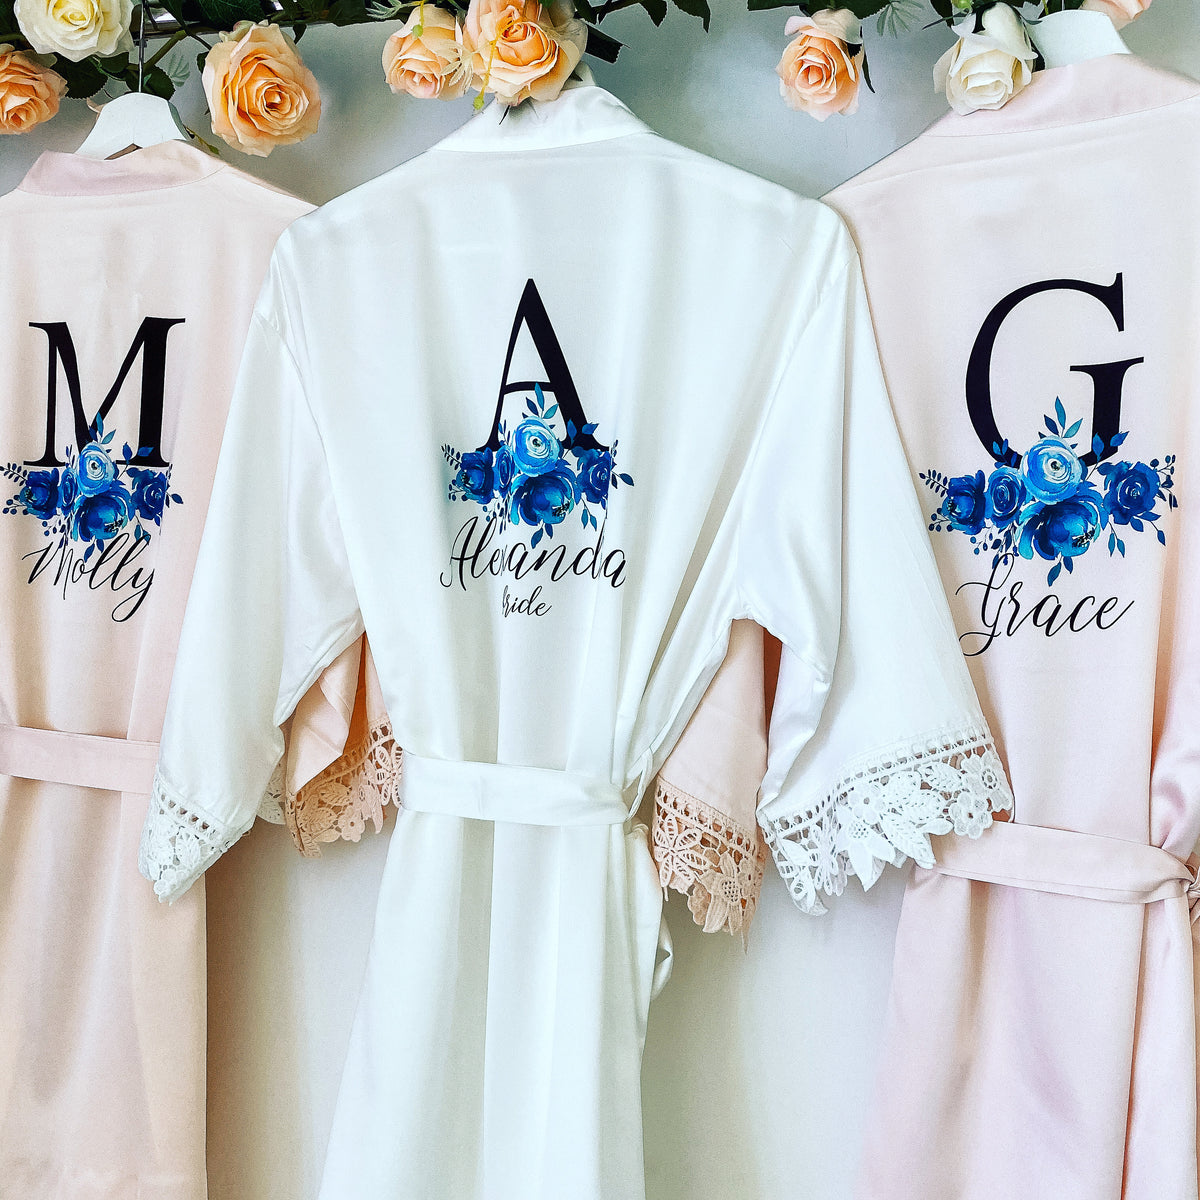 WENDY satin and lace robes with blue floral design The Bespoke Wedding Gift Company